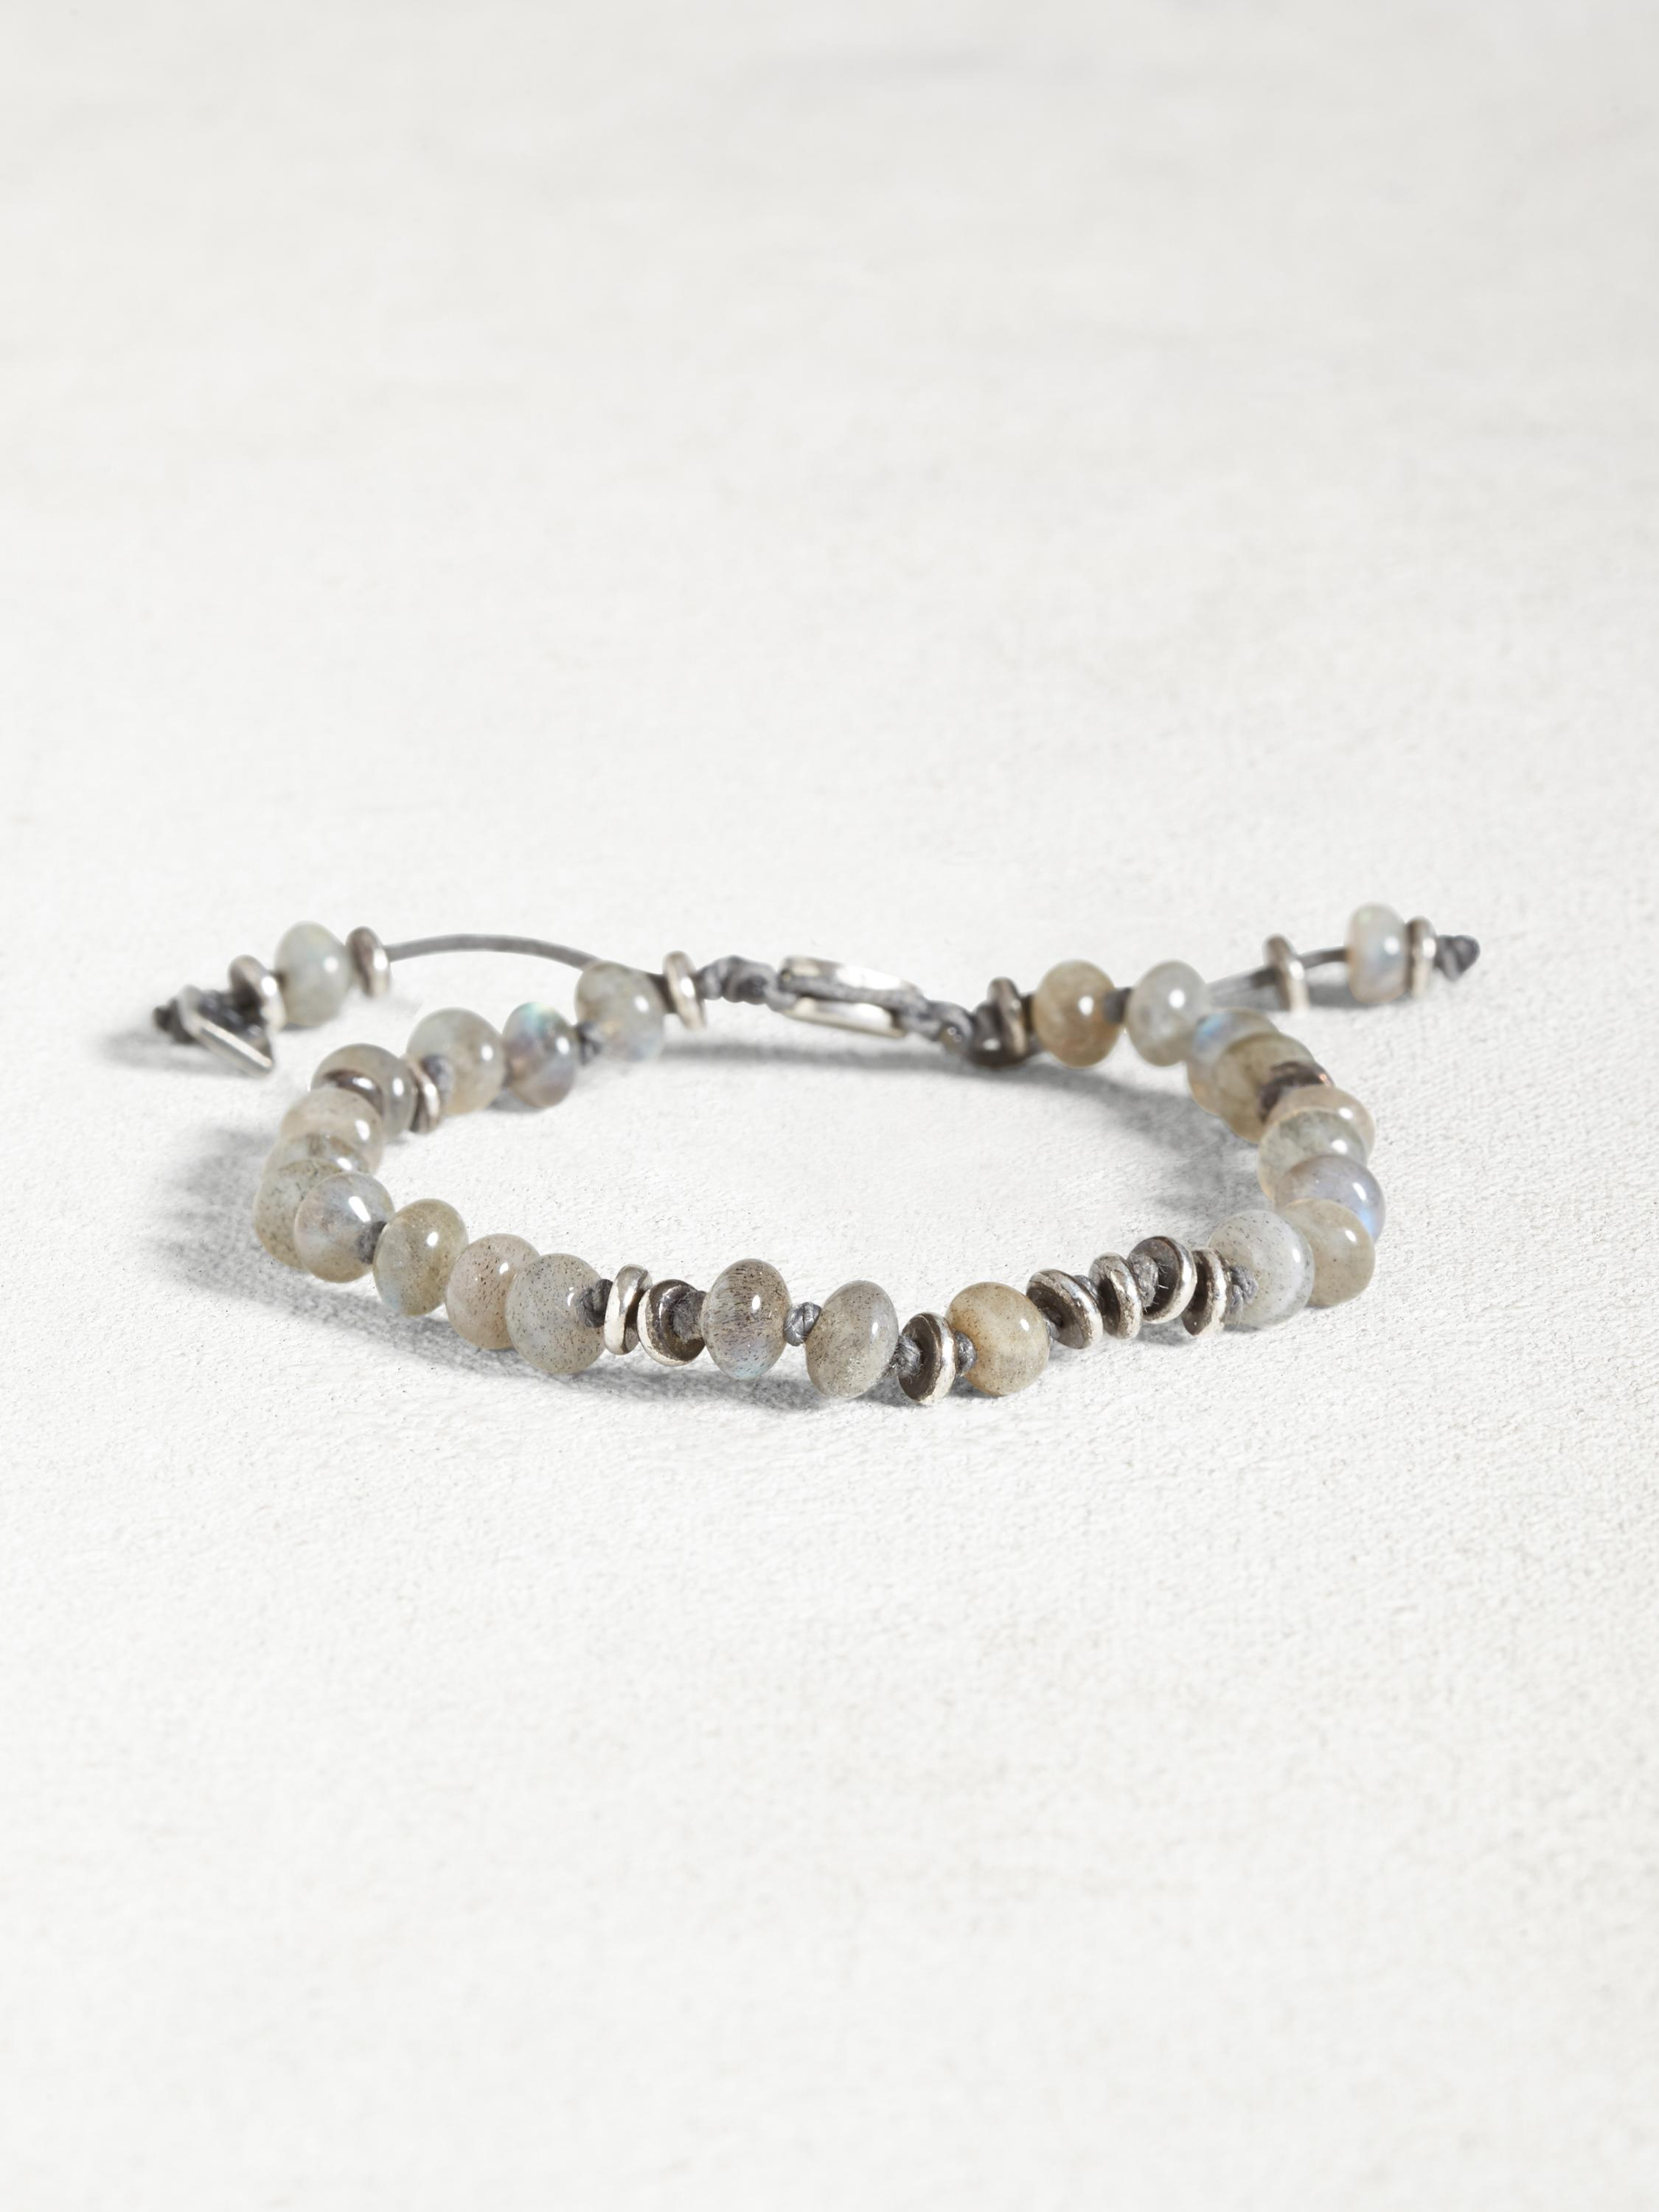 Labradorite and Sterling Silver Bracelet